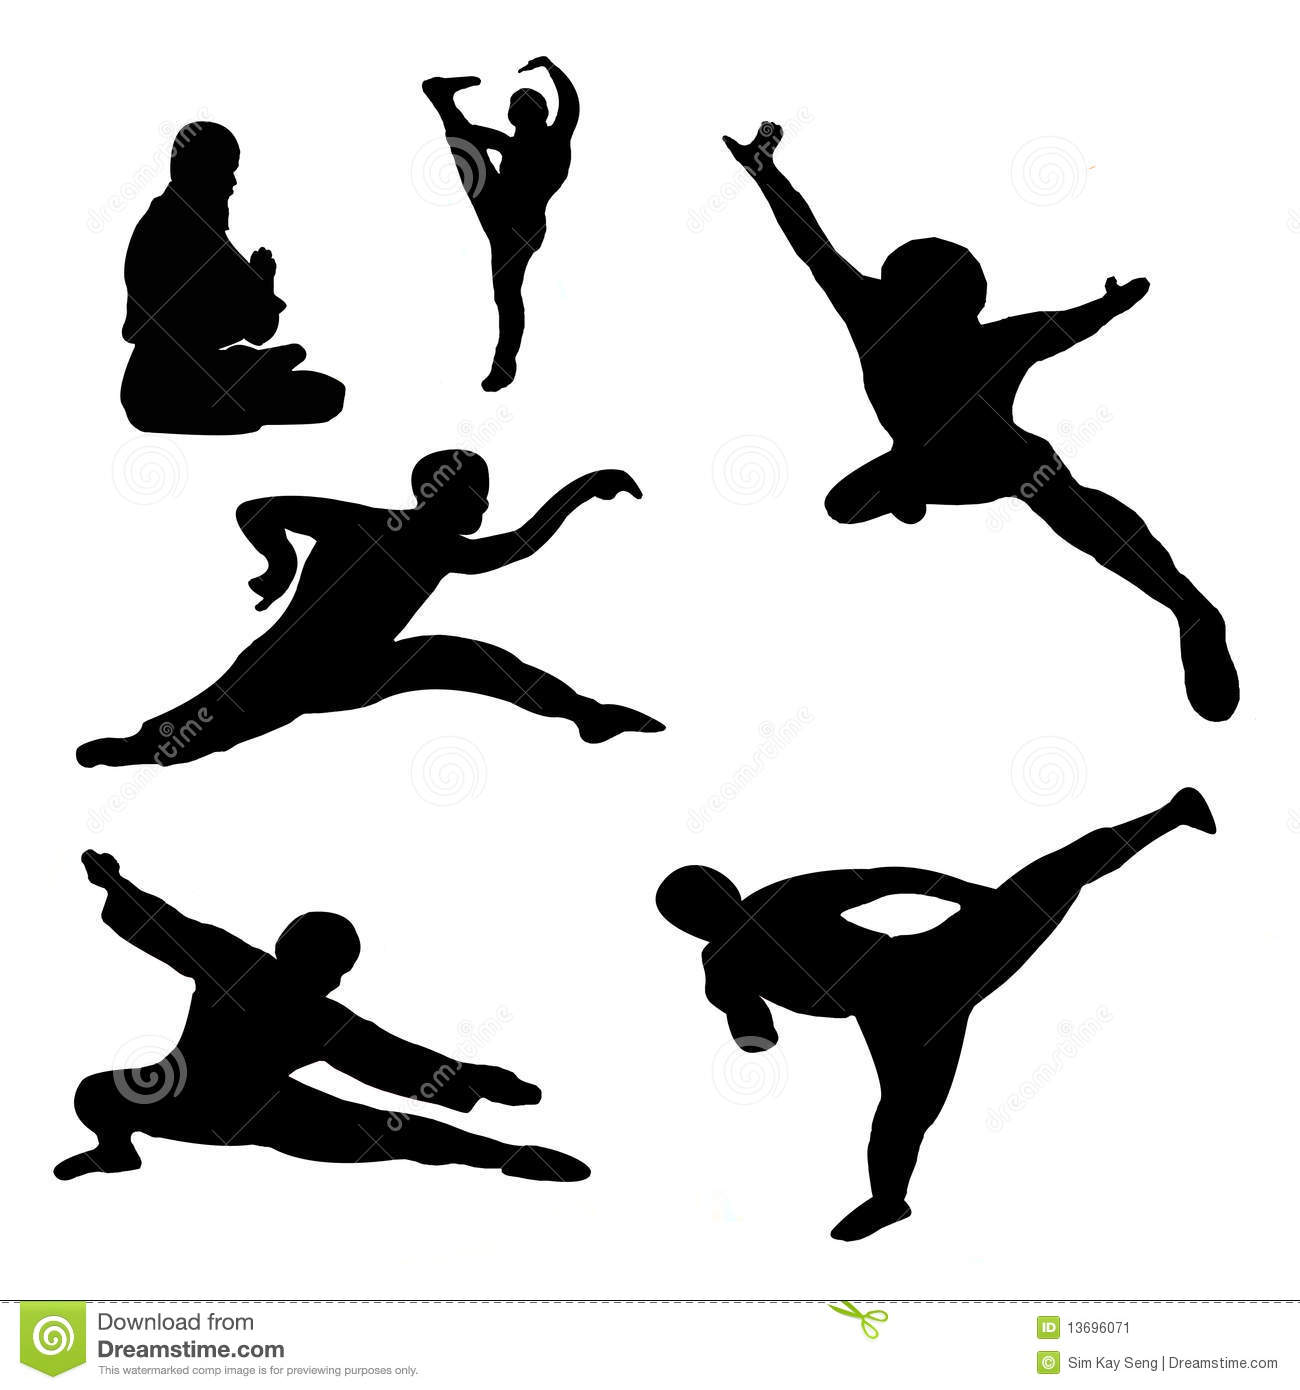 Chinese kungfu fighters in silhouette.